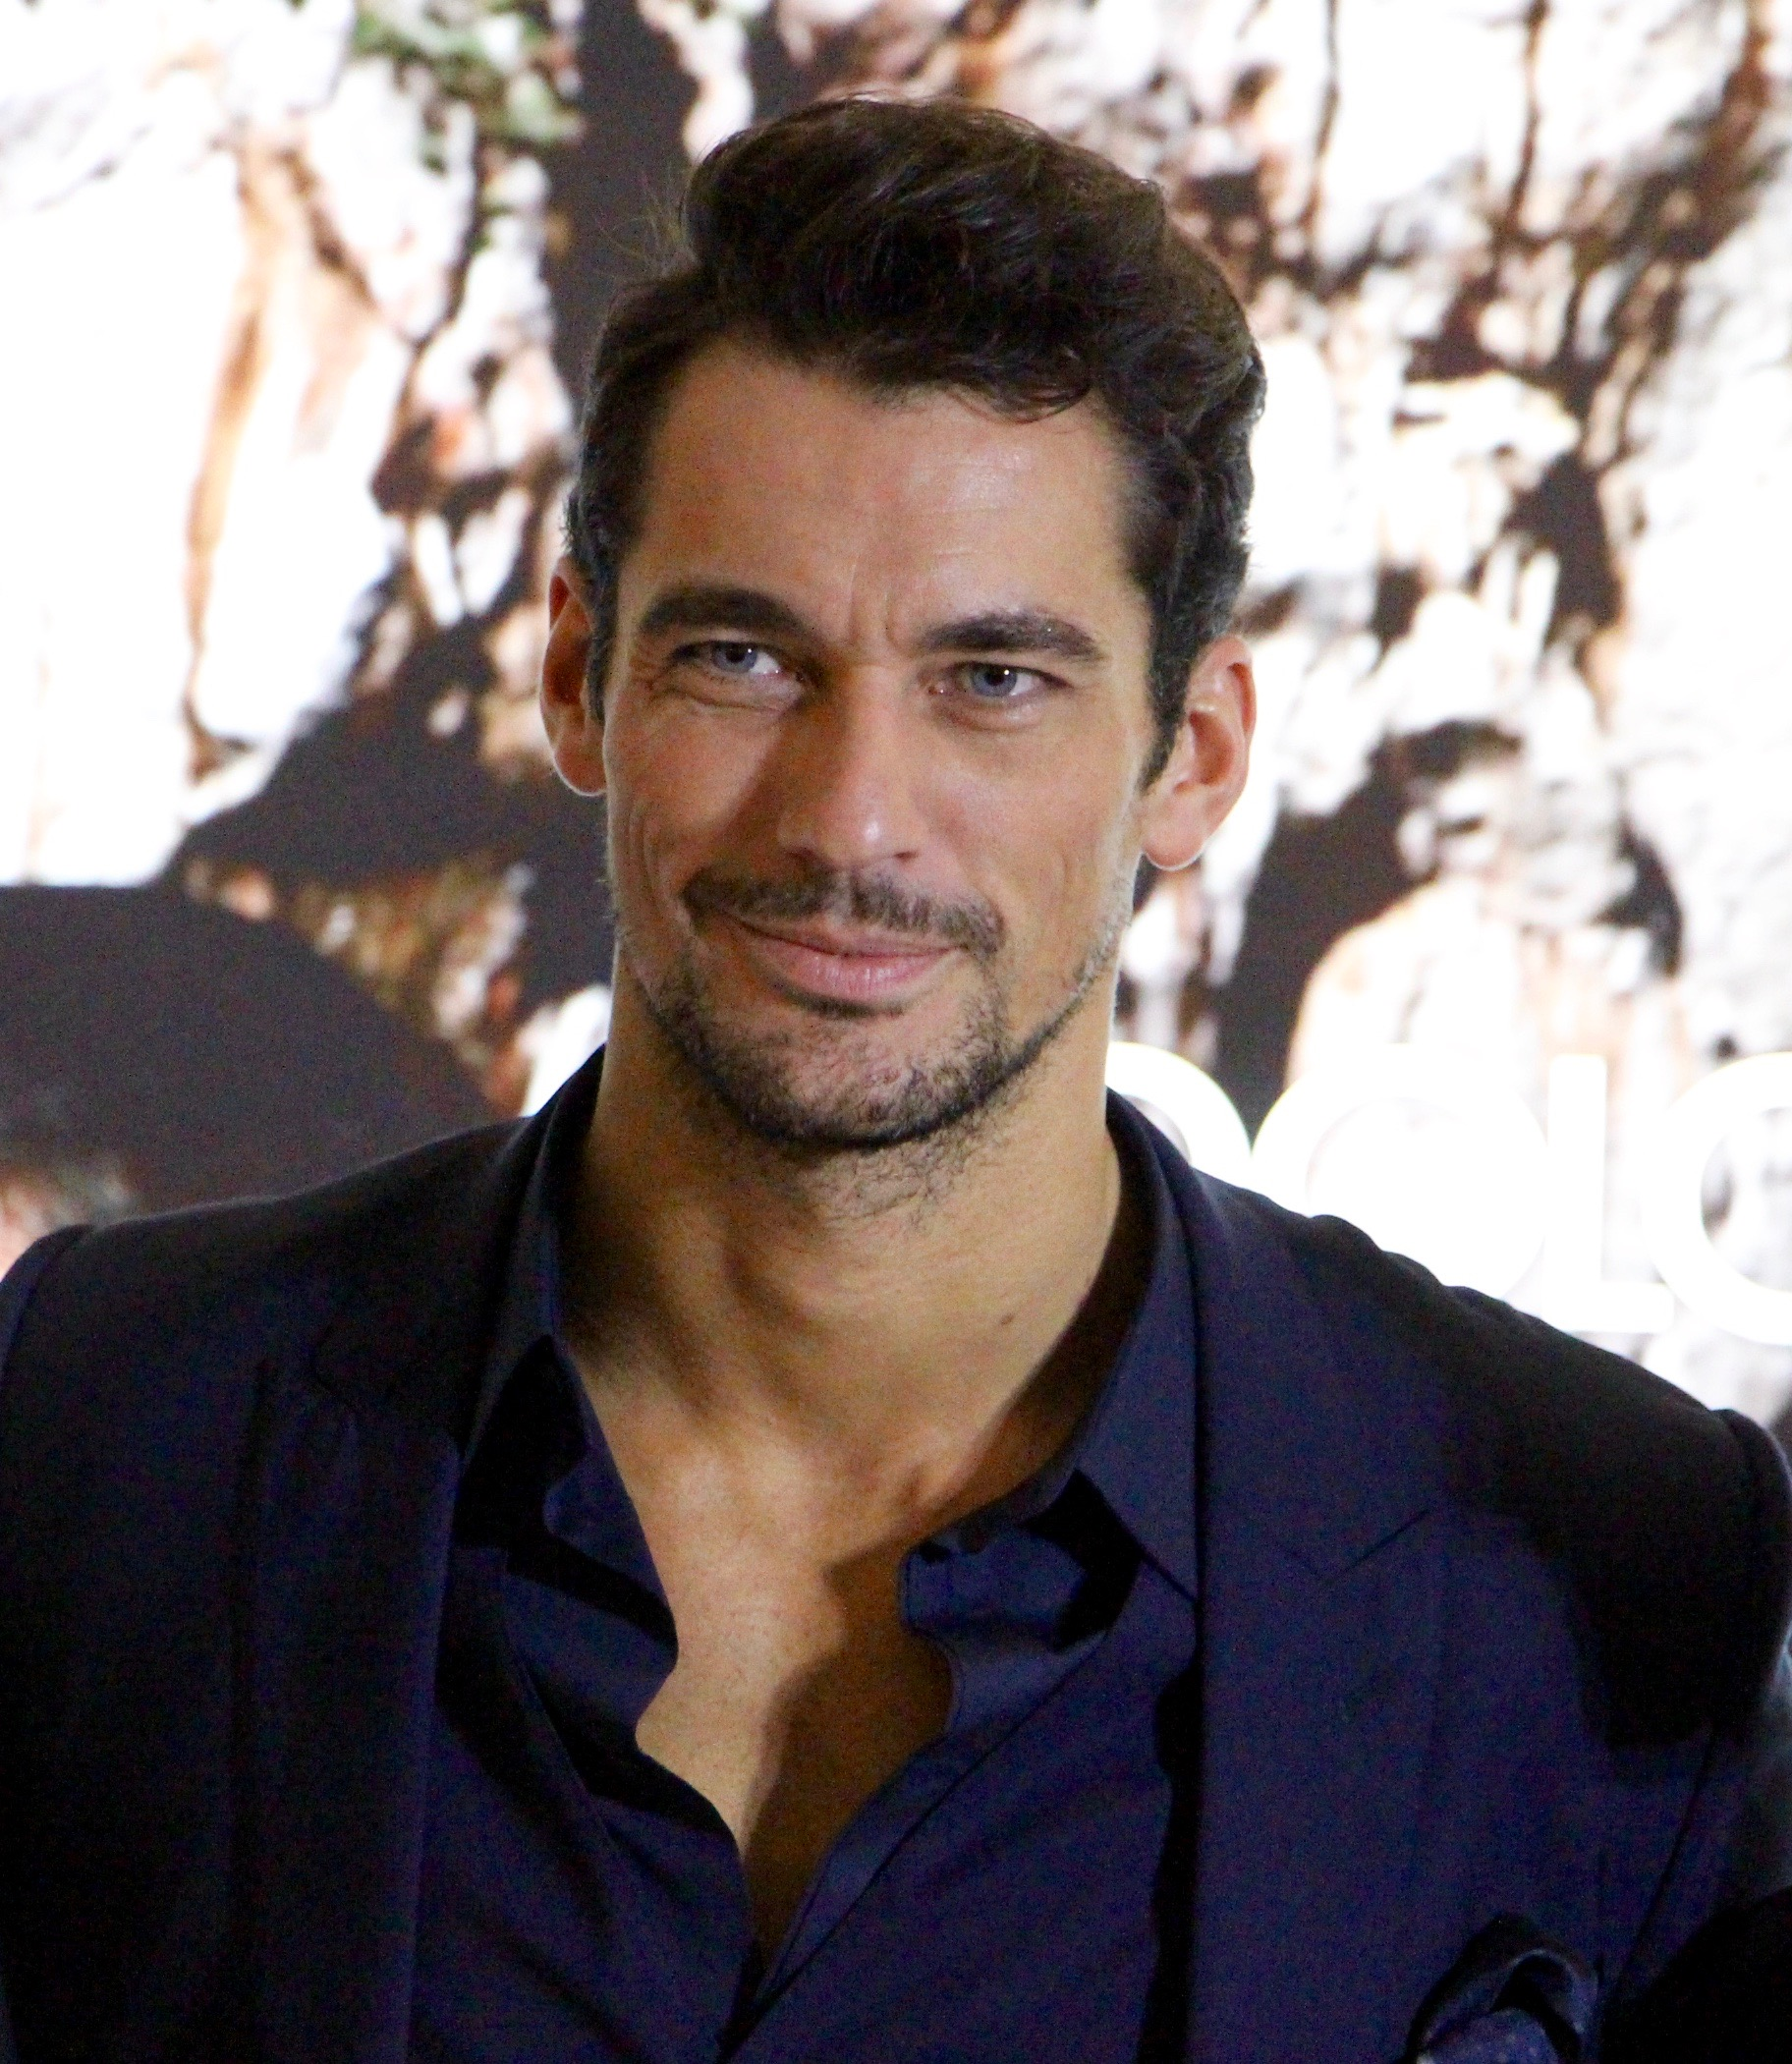 The 40-year old son of father Chris Gandy and mother Brenda Gandy David Gandy in 2020 photo. David Gandy earned a million dollar salary - leaving the net worth at 10 million in 2020